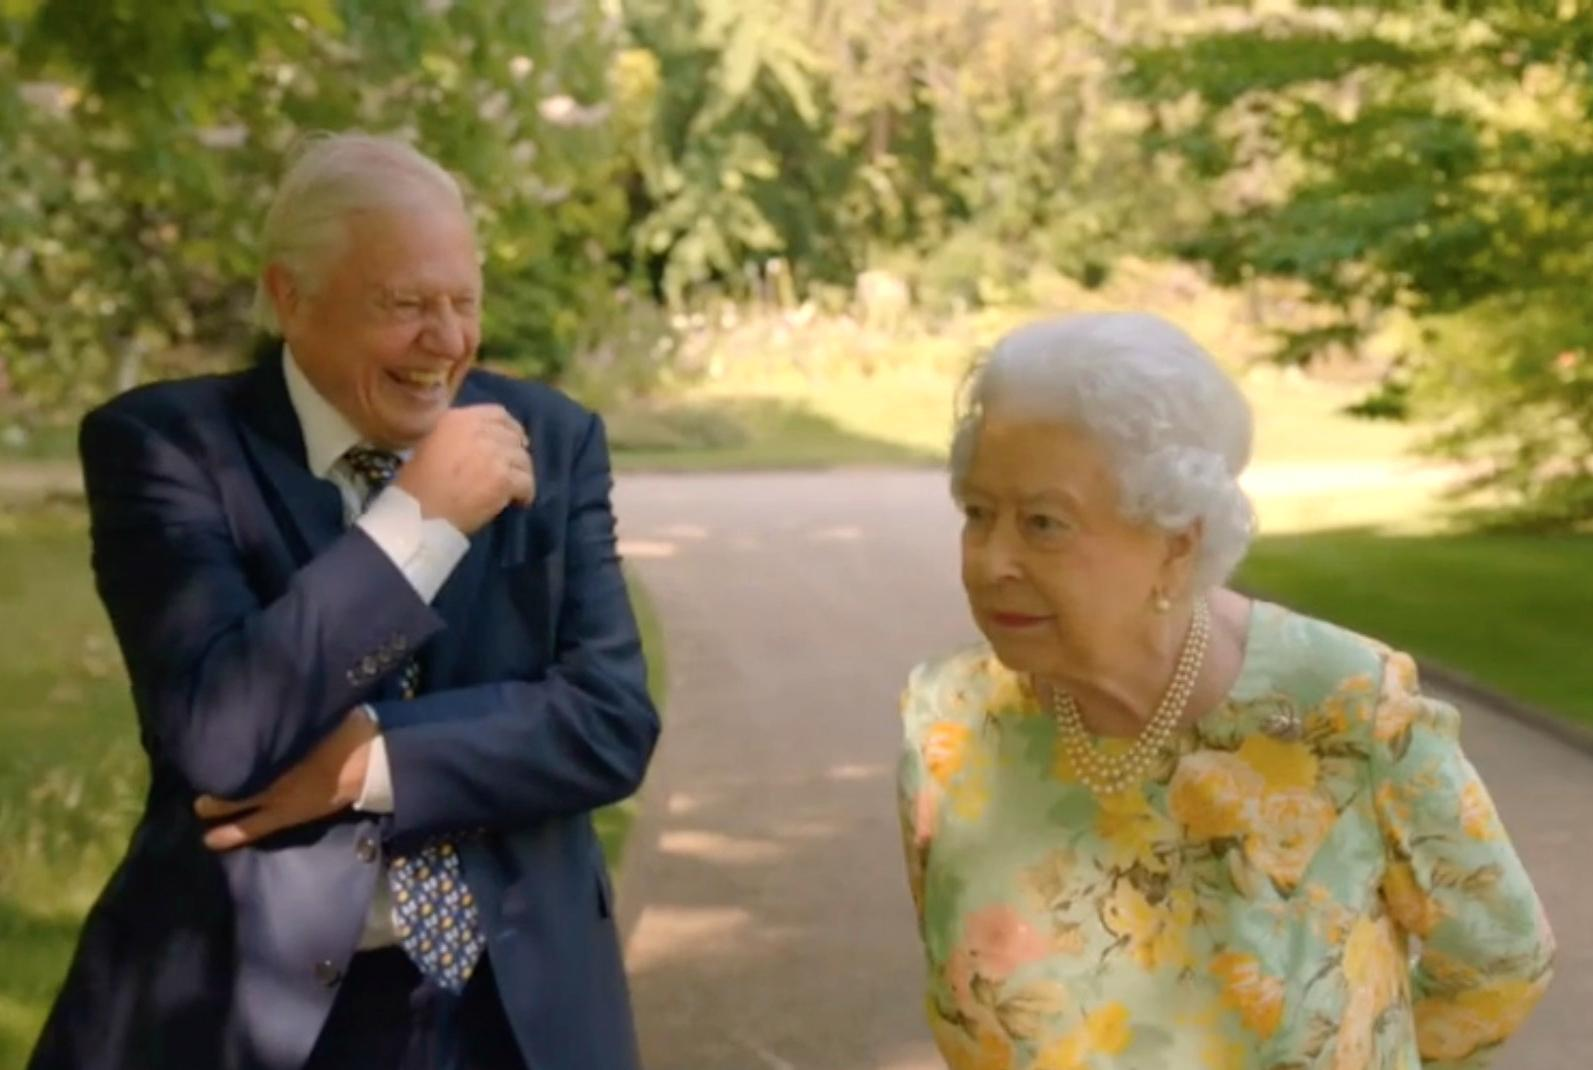 The Queen And Sir David Attenborough Team Up To Protect